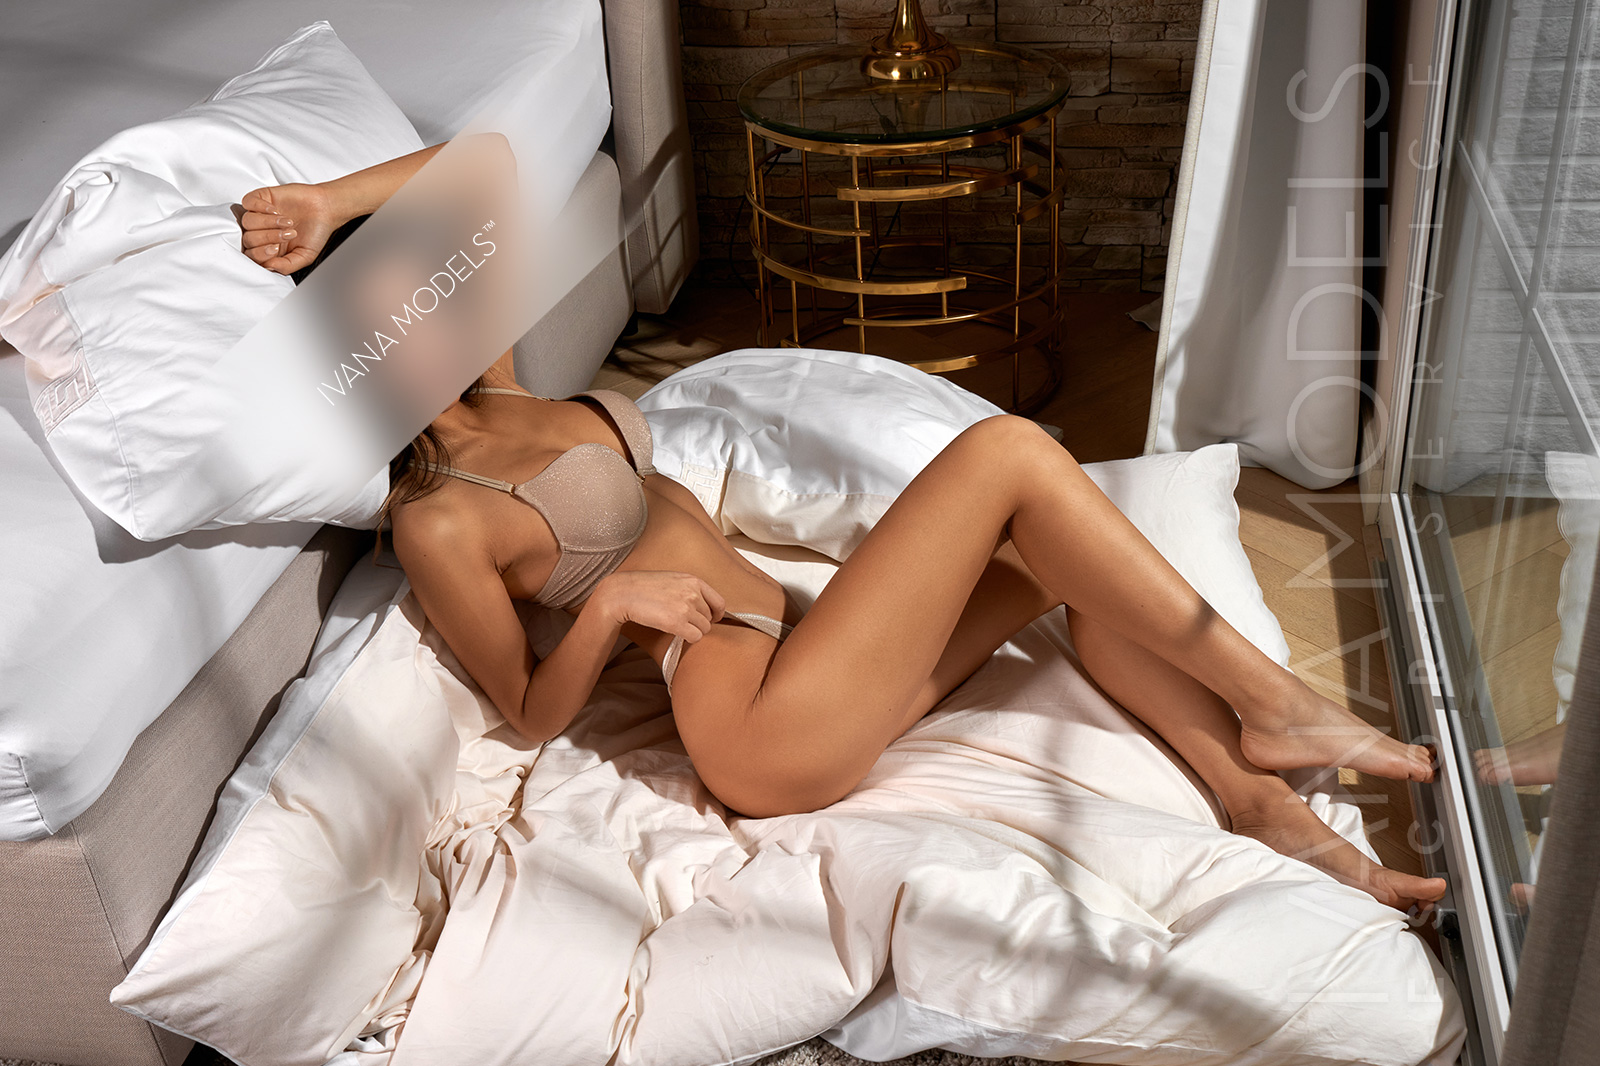 Independent escorts in Frankfurt - Ariana